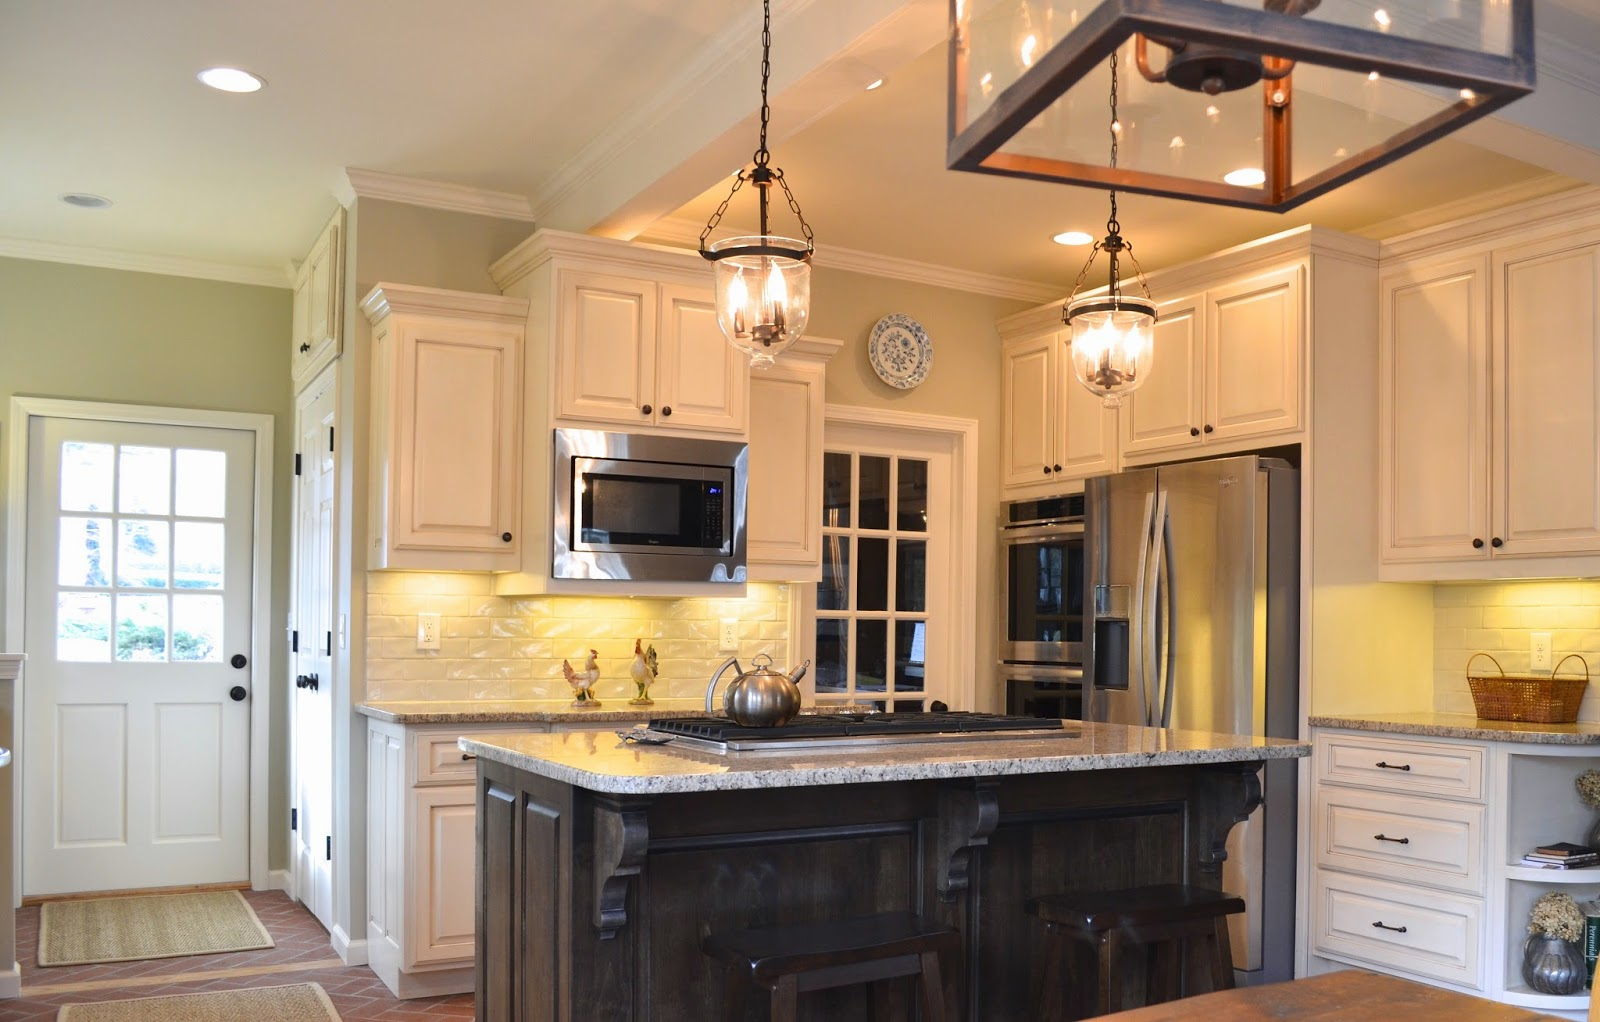 Bellissimo and bella maja kitchen reno before and after for Galley kitchen with breakfast nook